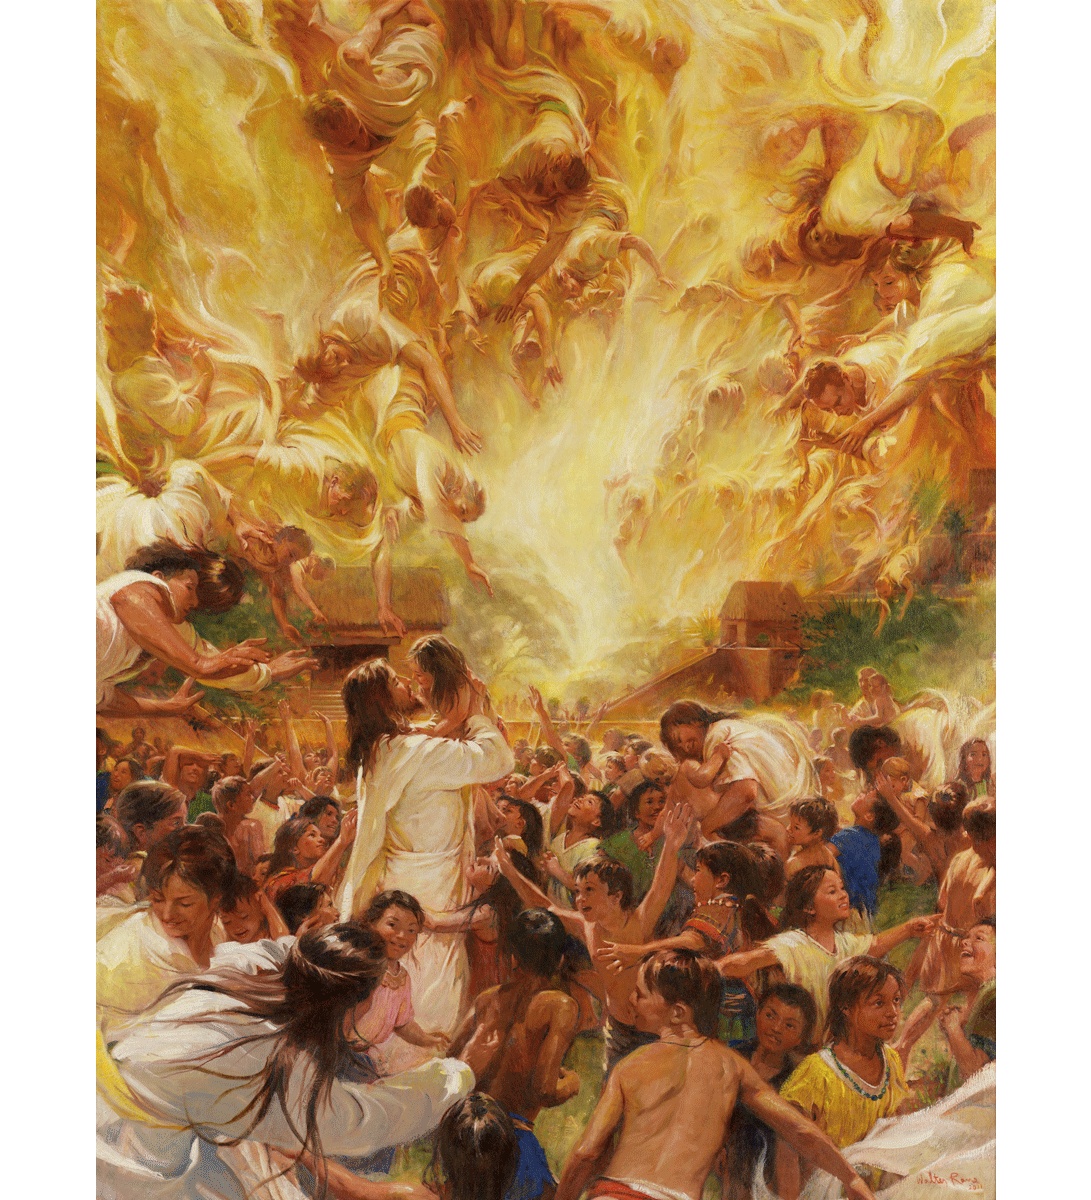 Angels Ministered Unto Them - Laser Print